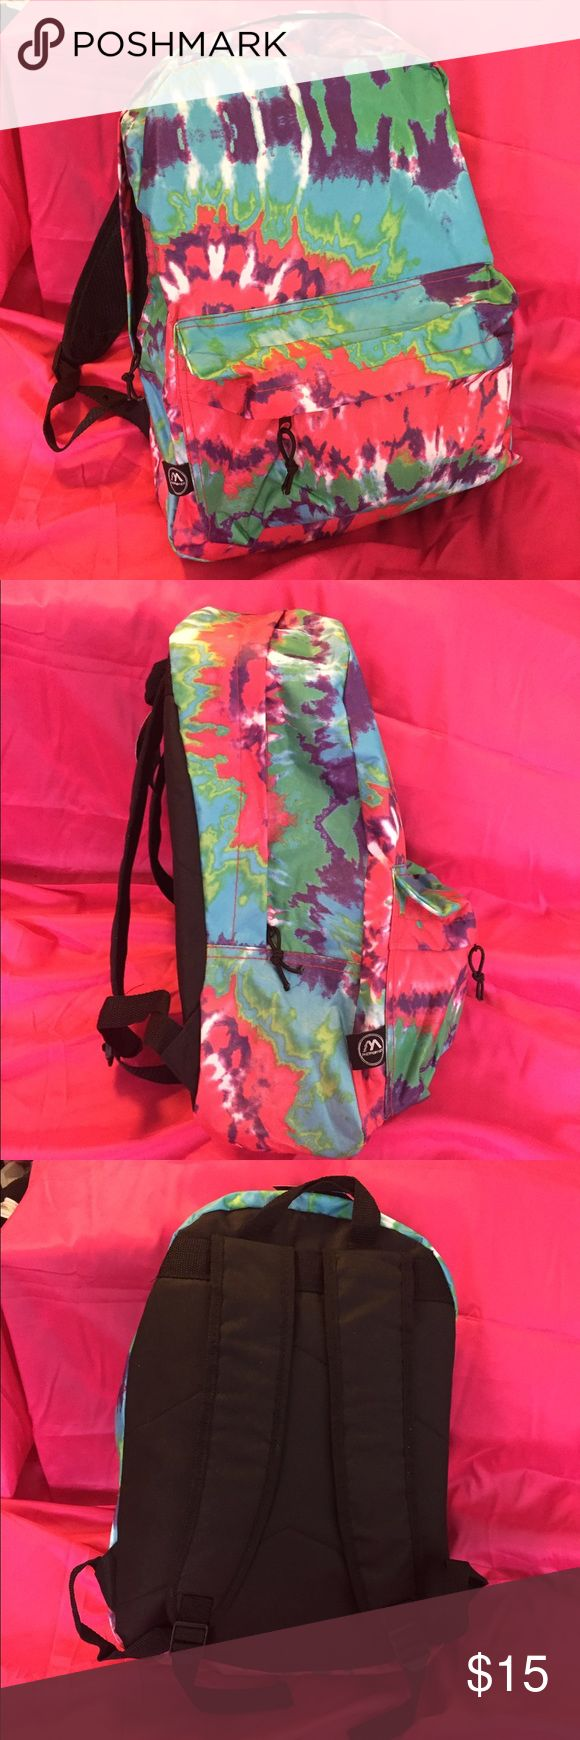 NEW tie dye backpack Brand new, never used tie dye backpack. Pack dimensions below. Adjustable straps, headphones hole with inner pocket. Really cute bag for school, travel, or music festivals.   Main compartment: 12w 16.5h 5d Pocket 10w 7h 1.5d  Not Forever 21, but for exposure. Also: UNIF / Charlotte Russe / Victoria's Secret / PINK / Urban Outfitters / iheartraves / little black diamond / oceanmoon / rave with mi gente / rave / festival / hippie / boho / trippy / edc / ultra / rainbow…